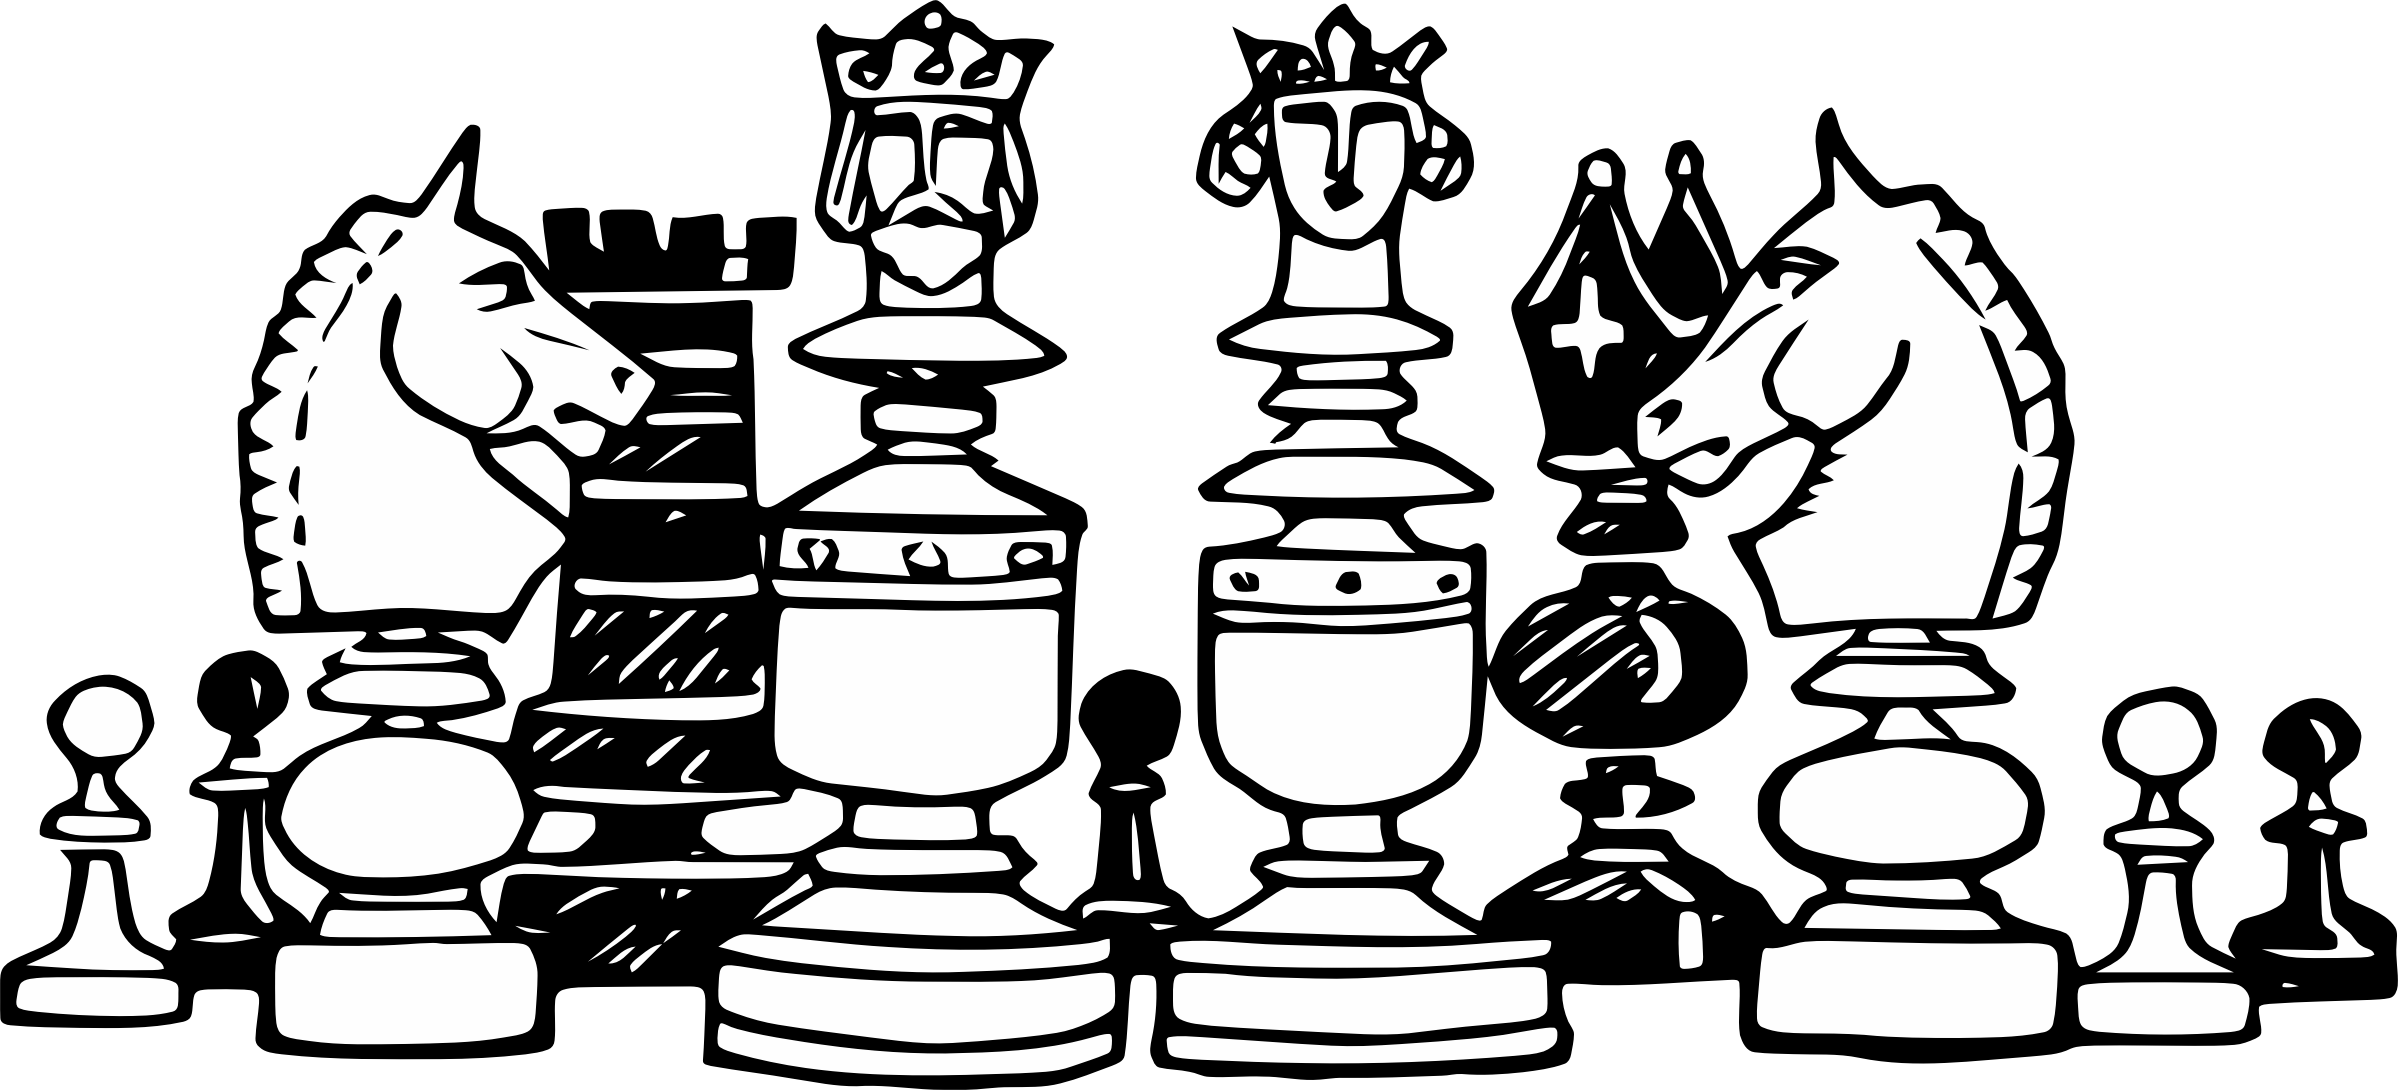 Chess Pieces Illustration by GDJ